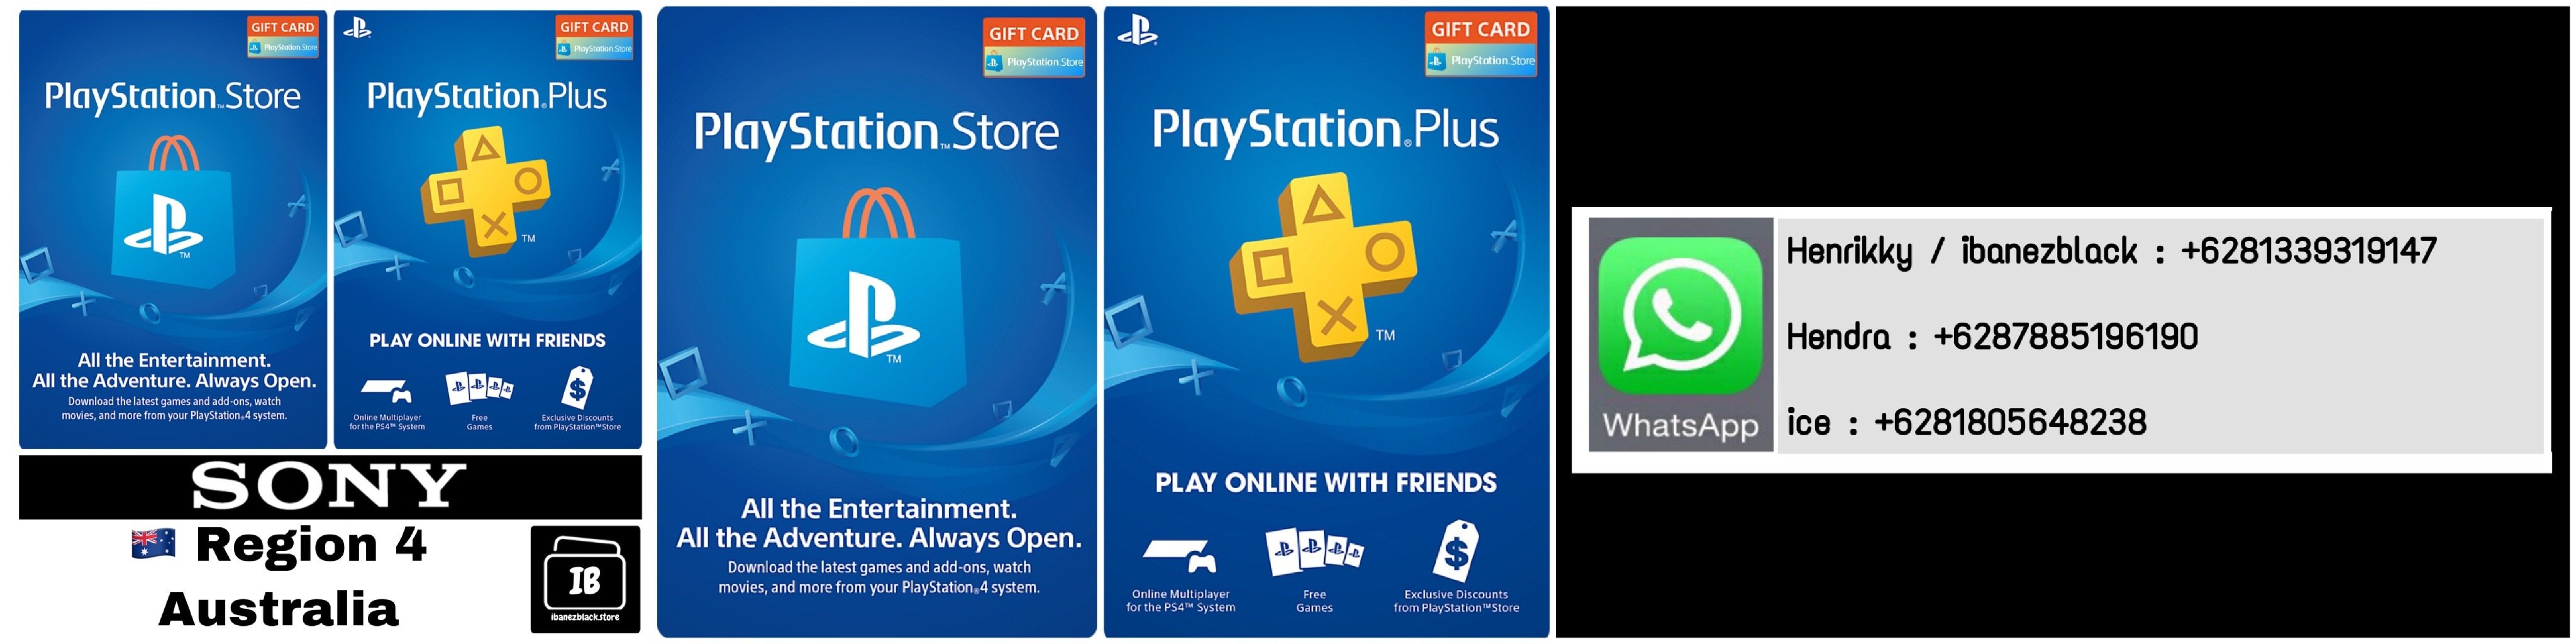 Playstation Store Gift Card (PSN Card) / Playstation Plus (PSN Plus) Australia